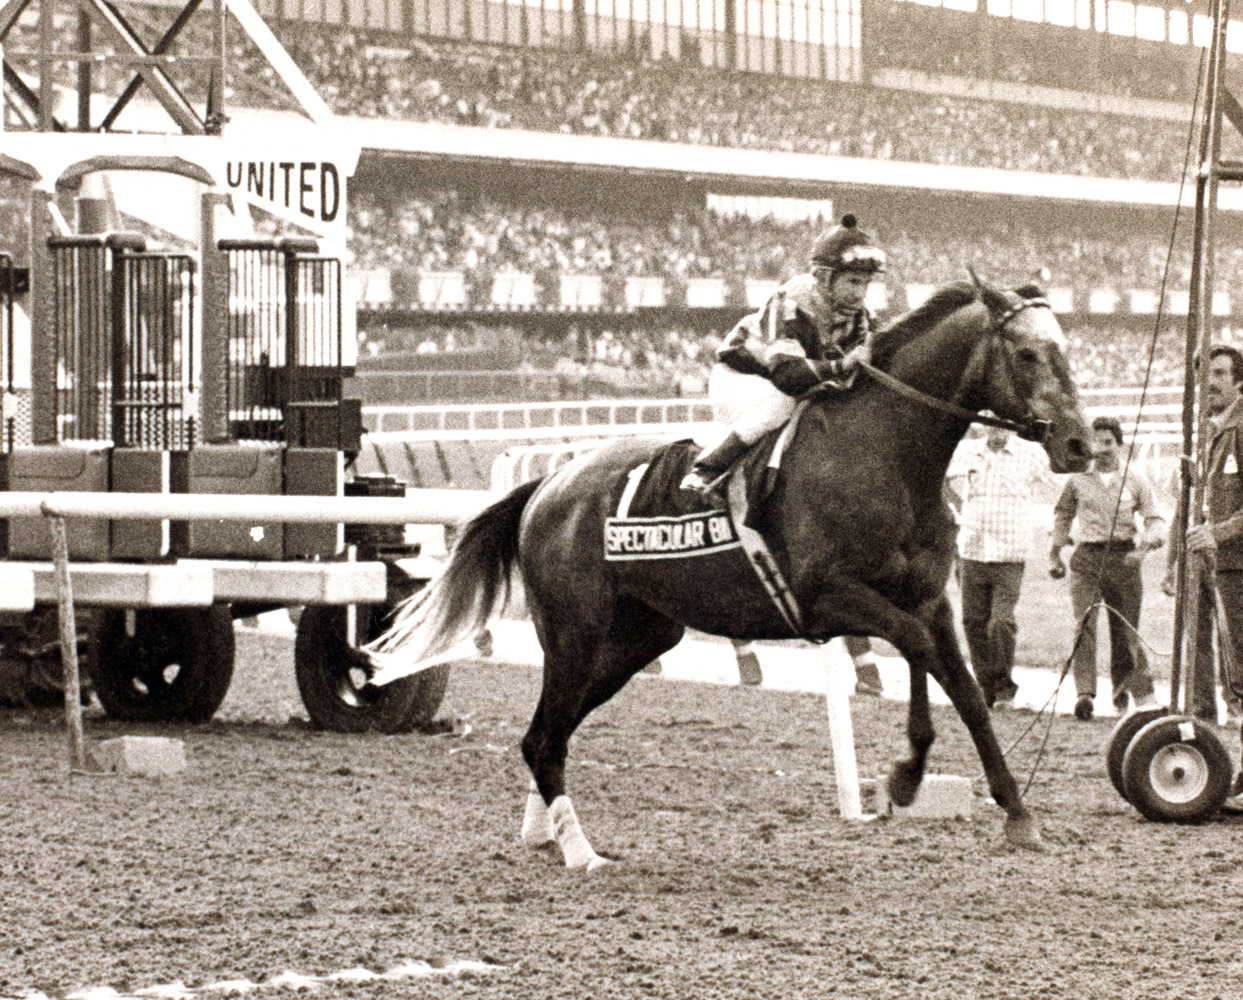 Spectacular Bid (Bill Shoemaker up) breaking from the gate for his walkover in the 1980 Woodward at Belmont, his final career race (Museum Collection)